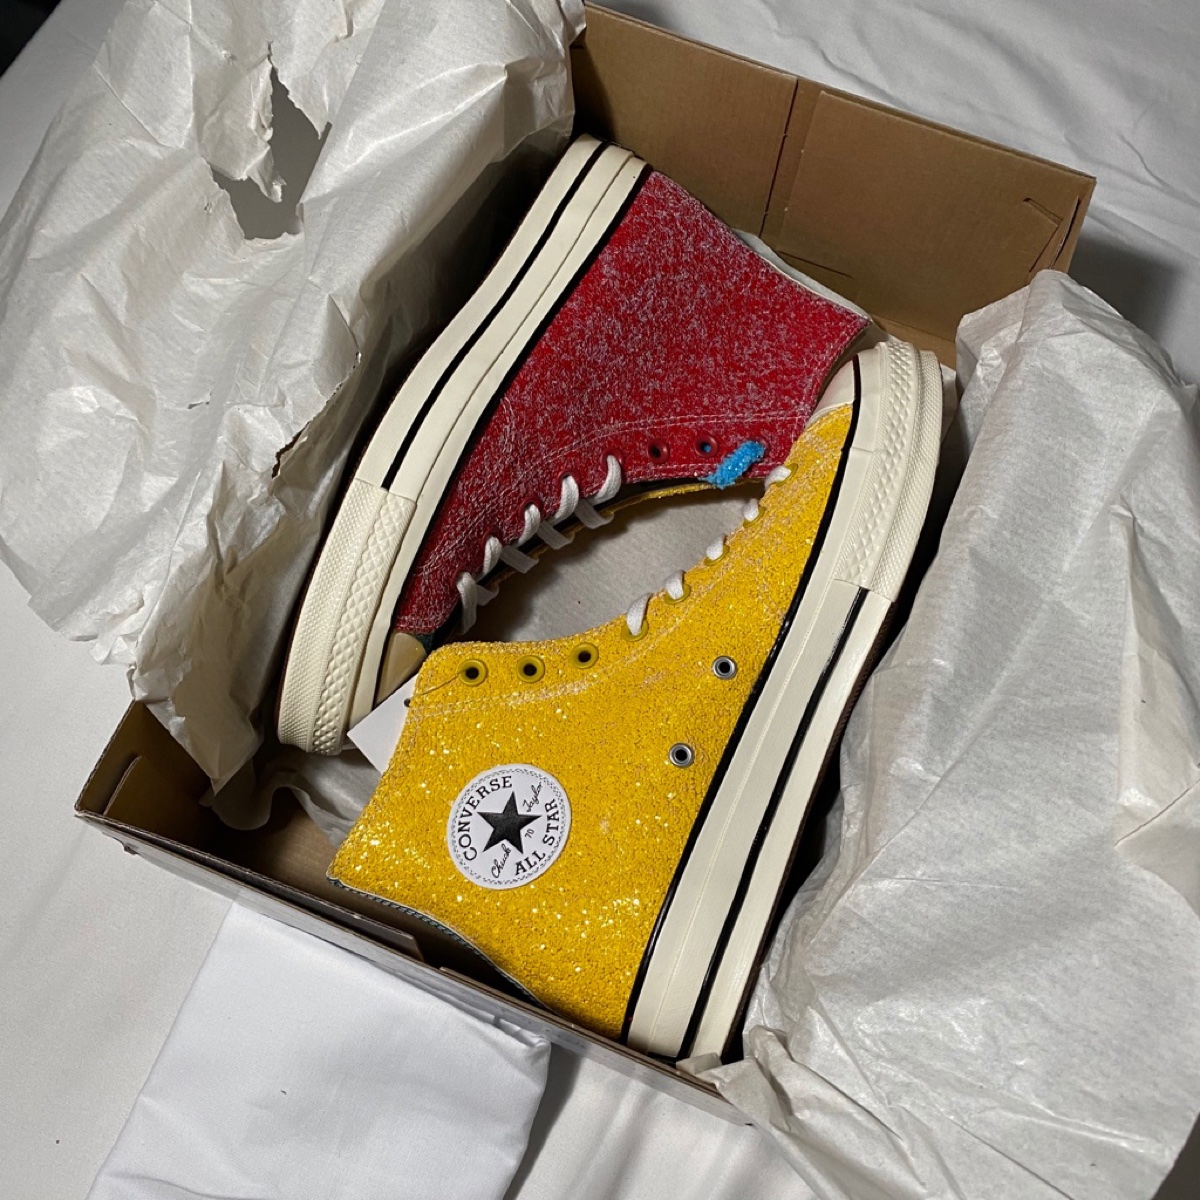 Converse Chuck Taylor All-Star 70s HI JW Anderson Cherry Sulfur